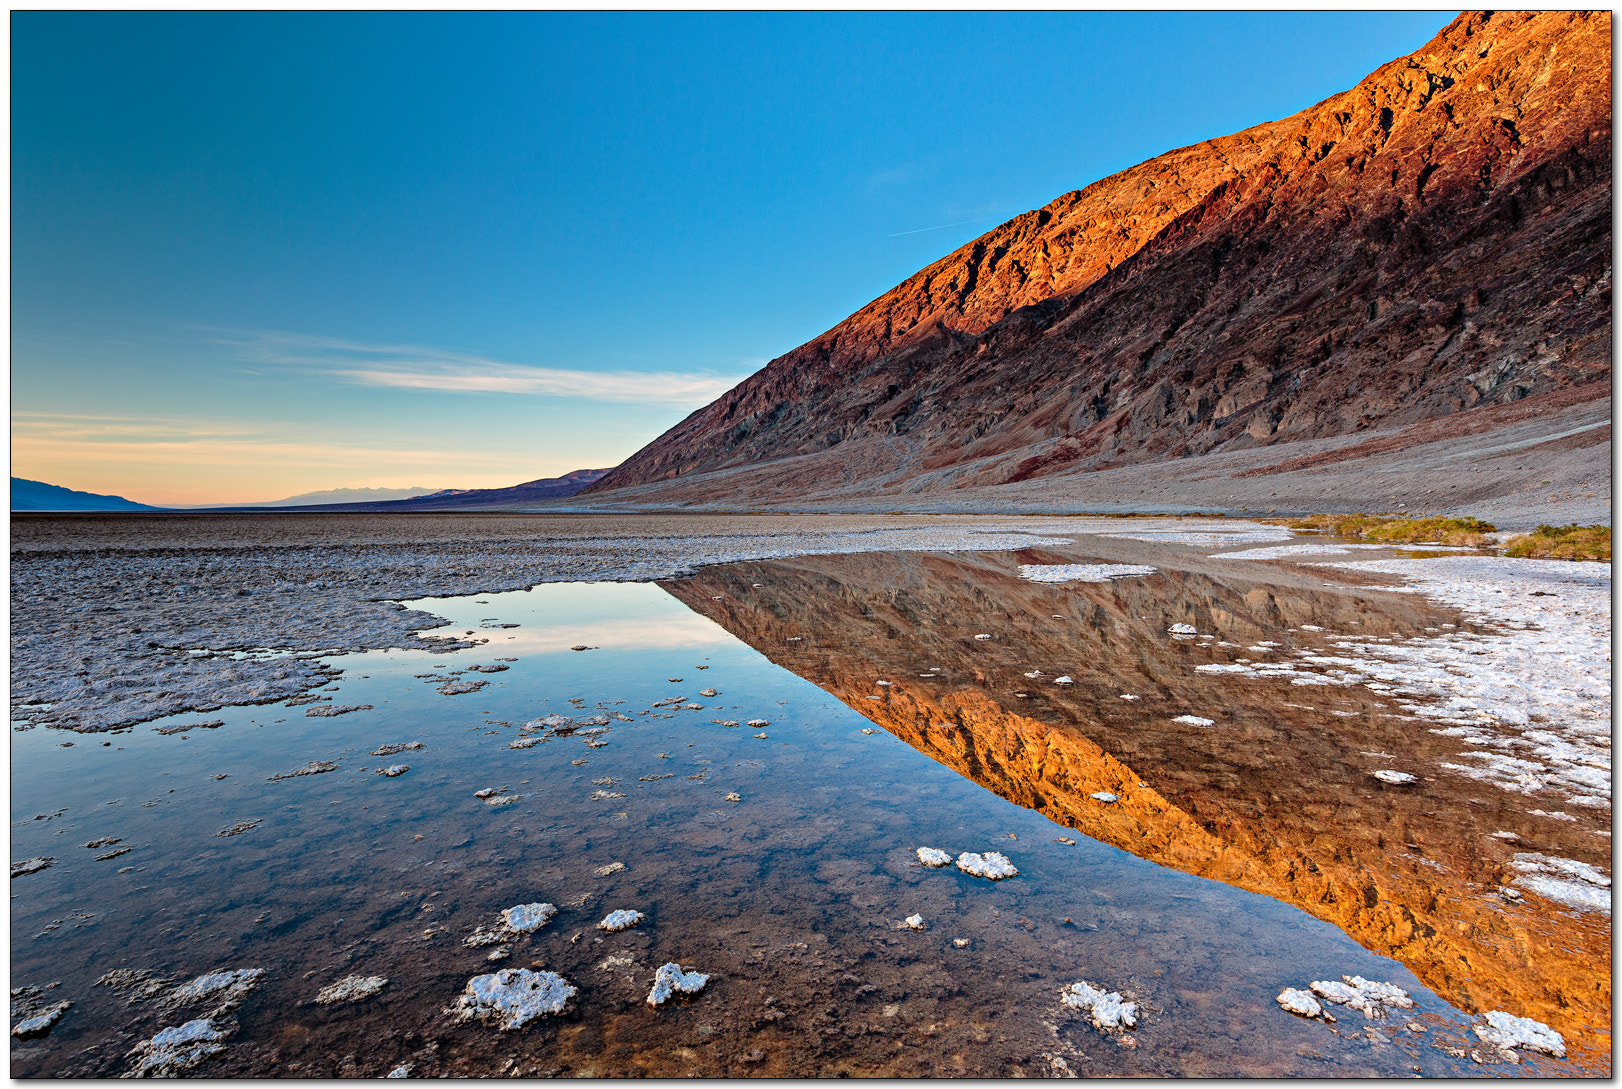 Photograph Badwater sunset reflection by Jameel Hyder on 500px